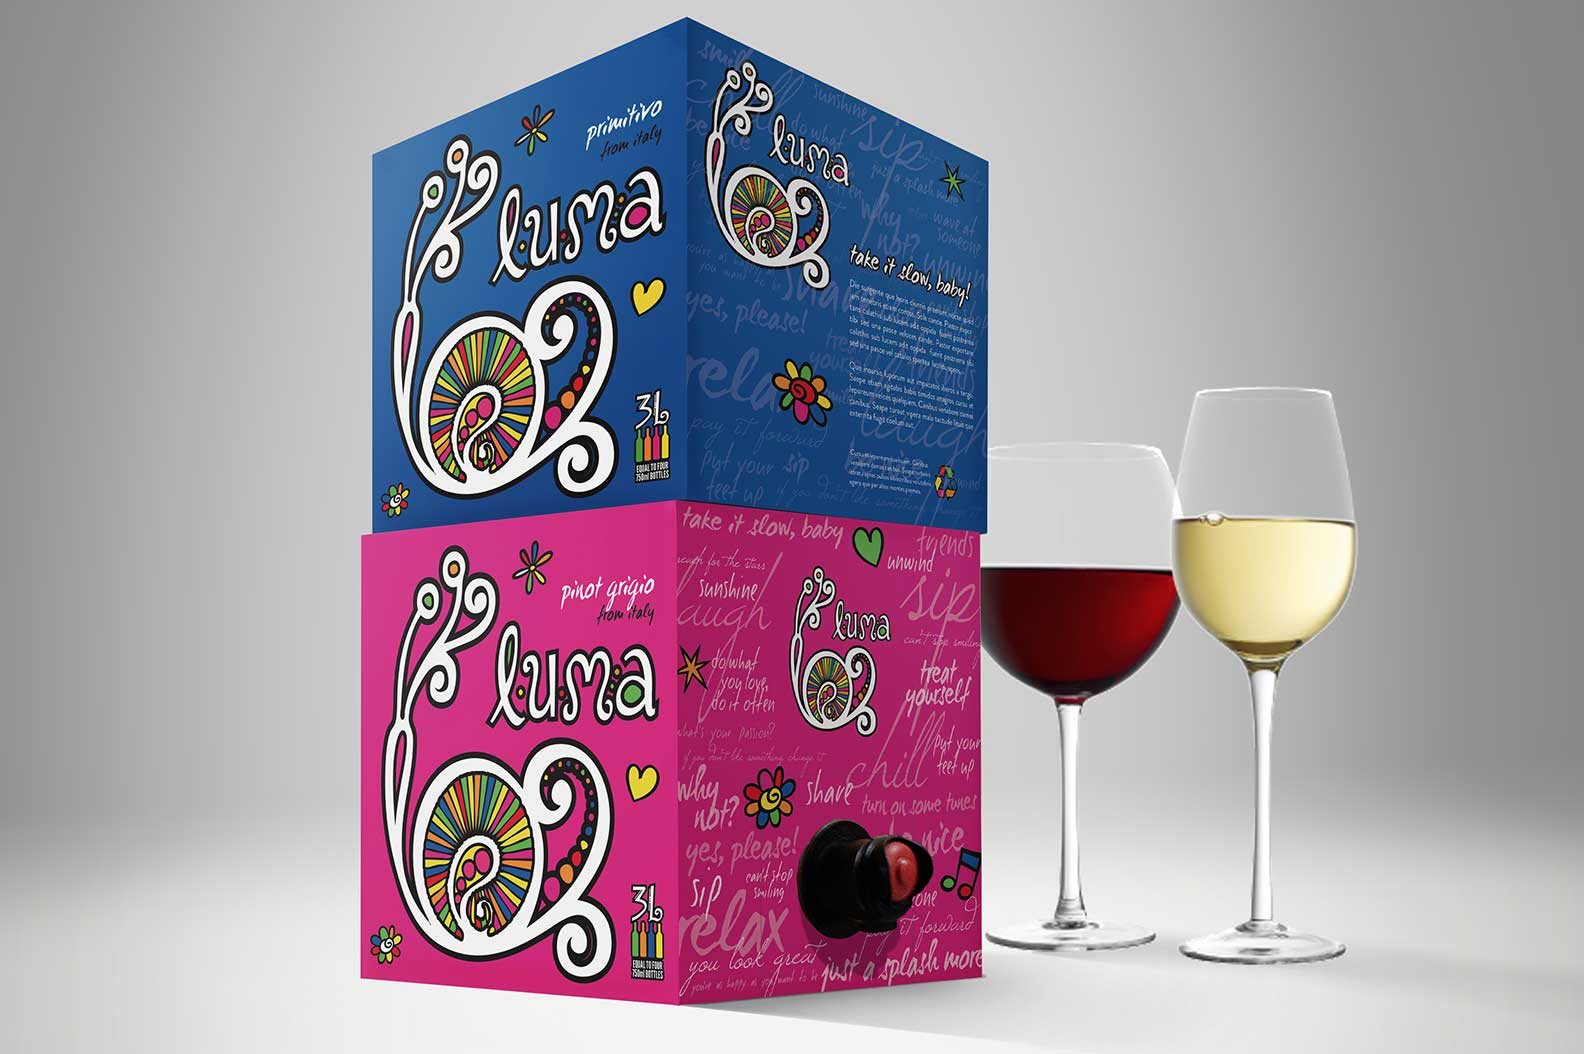 The Luma packaging was intended to reflect a wine with a more casual, social, fun, feel-good vibe. Two varieties shown here in a cube-box format.